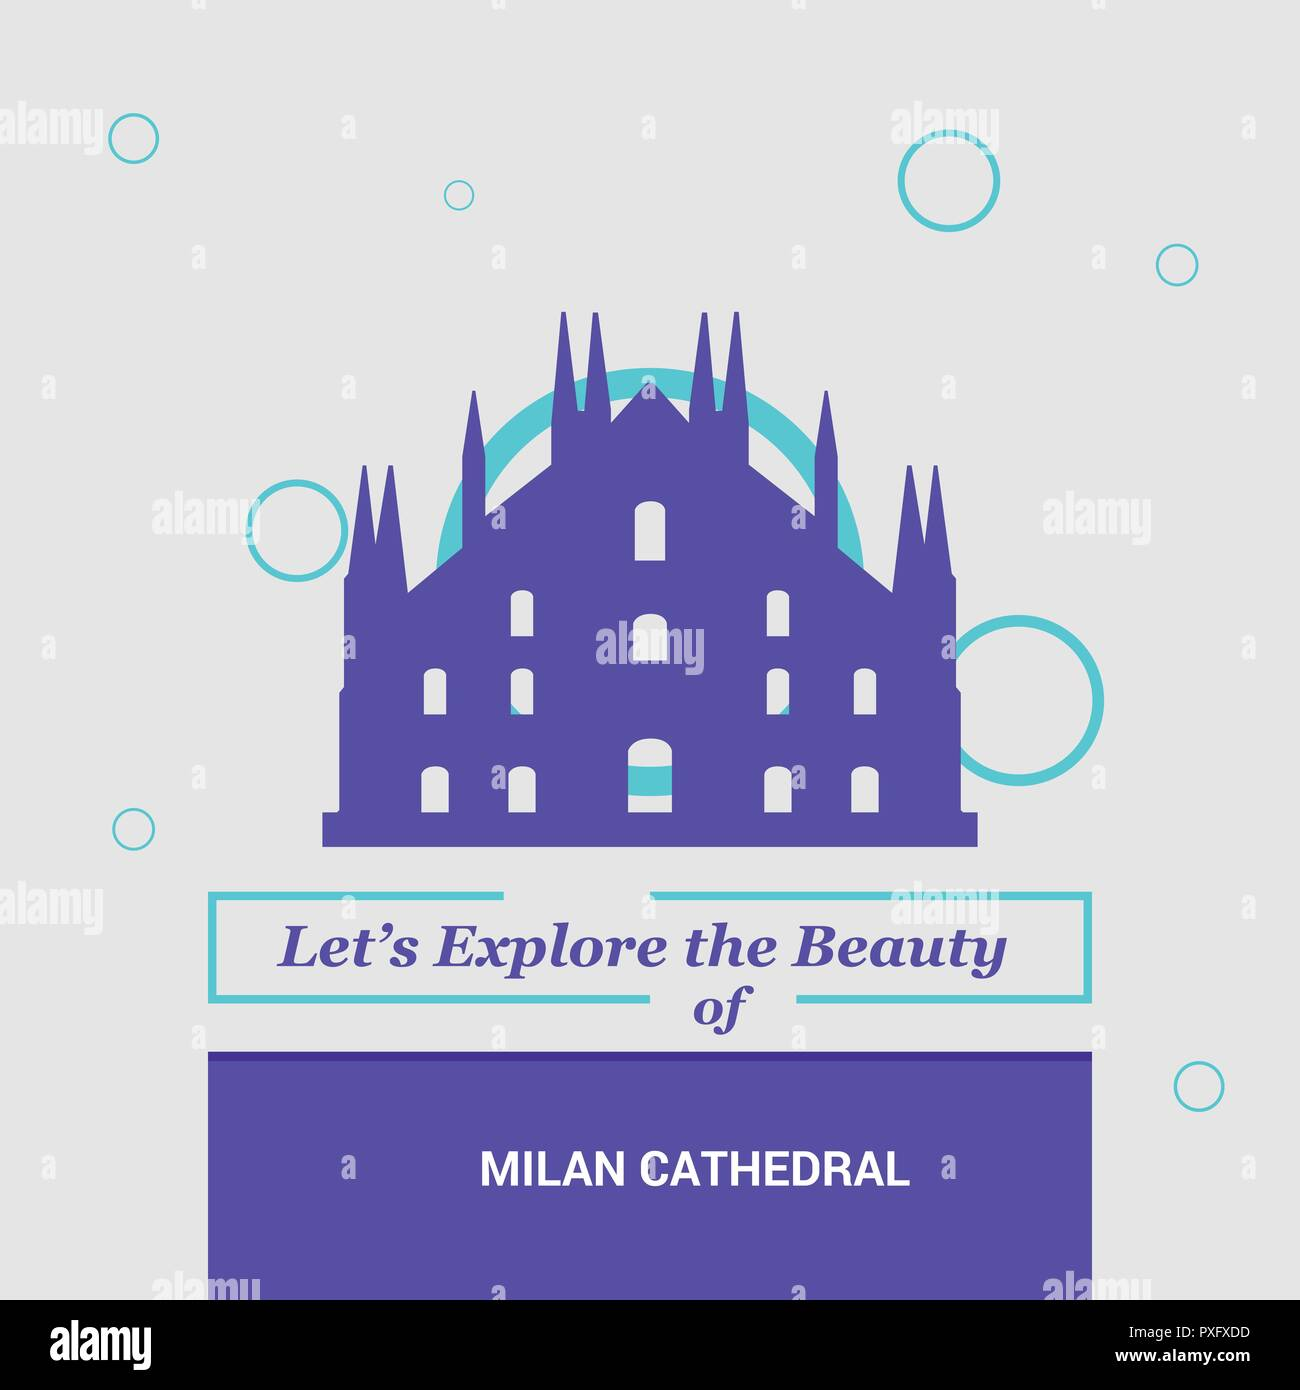 Let's Explore the beauty of Milan Cathedral, Italy. National Landmarks - Stock Vector